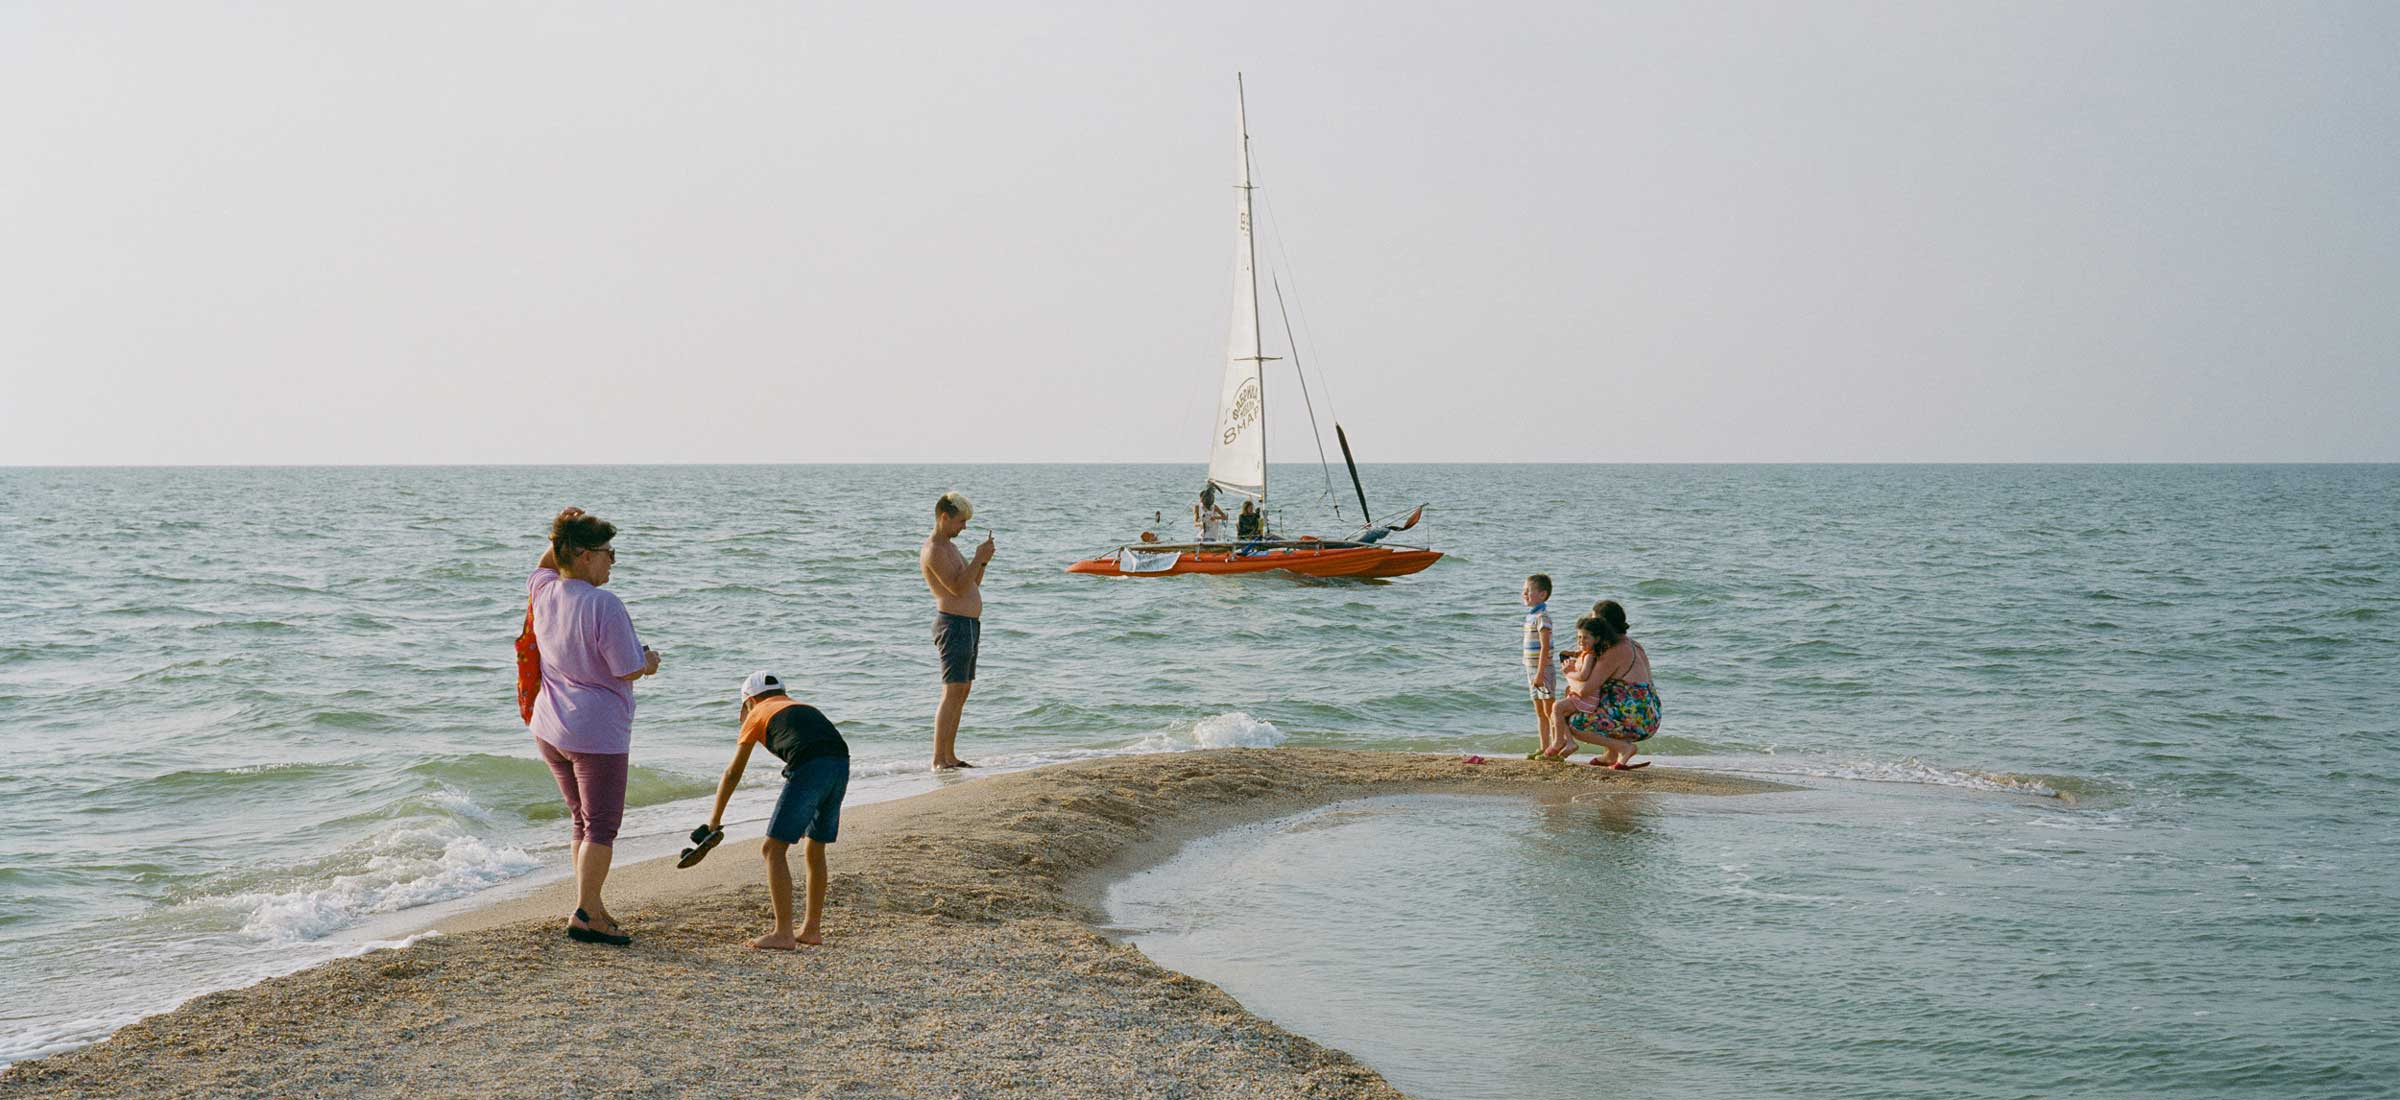 A golden-hued escape to summer evenings by the Sea of Azov